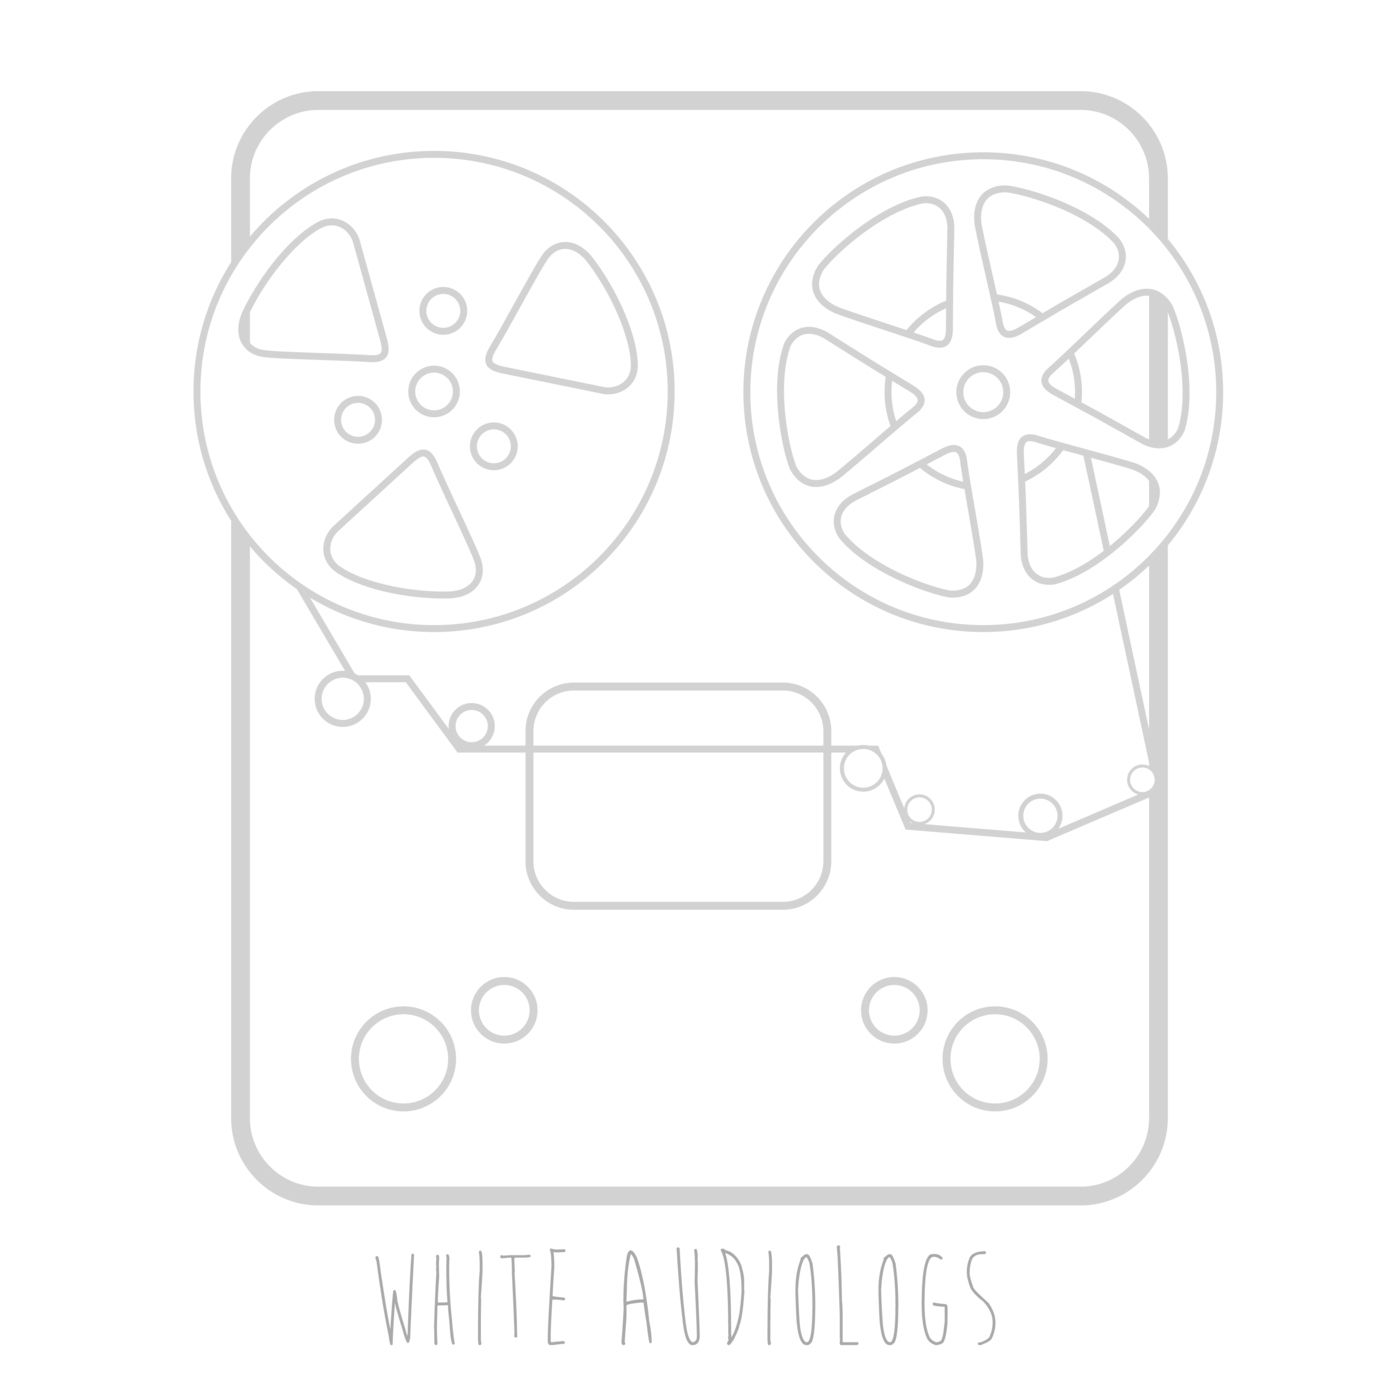 White Audiologs